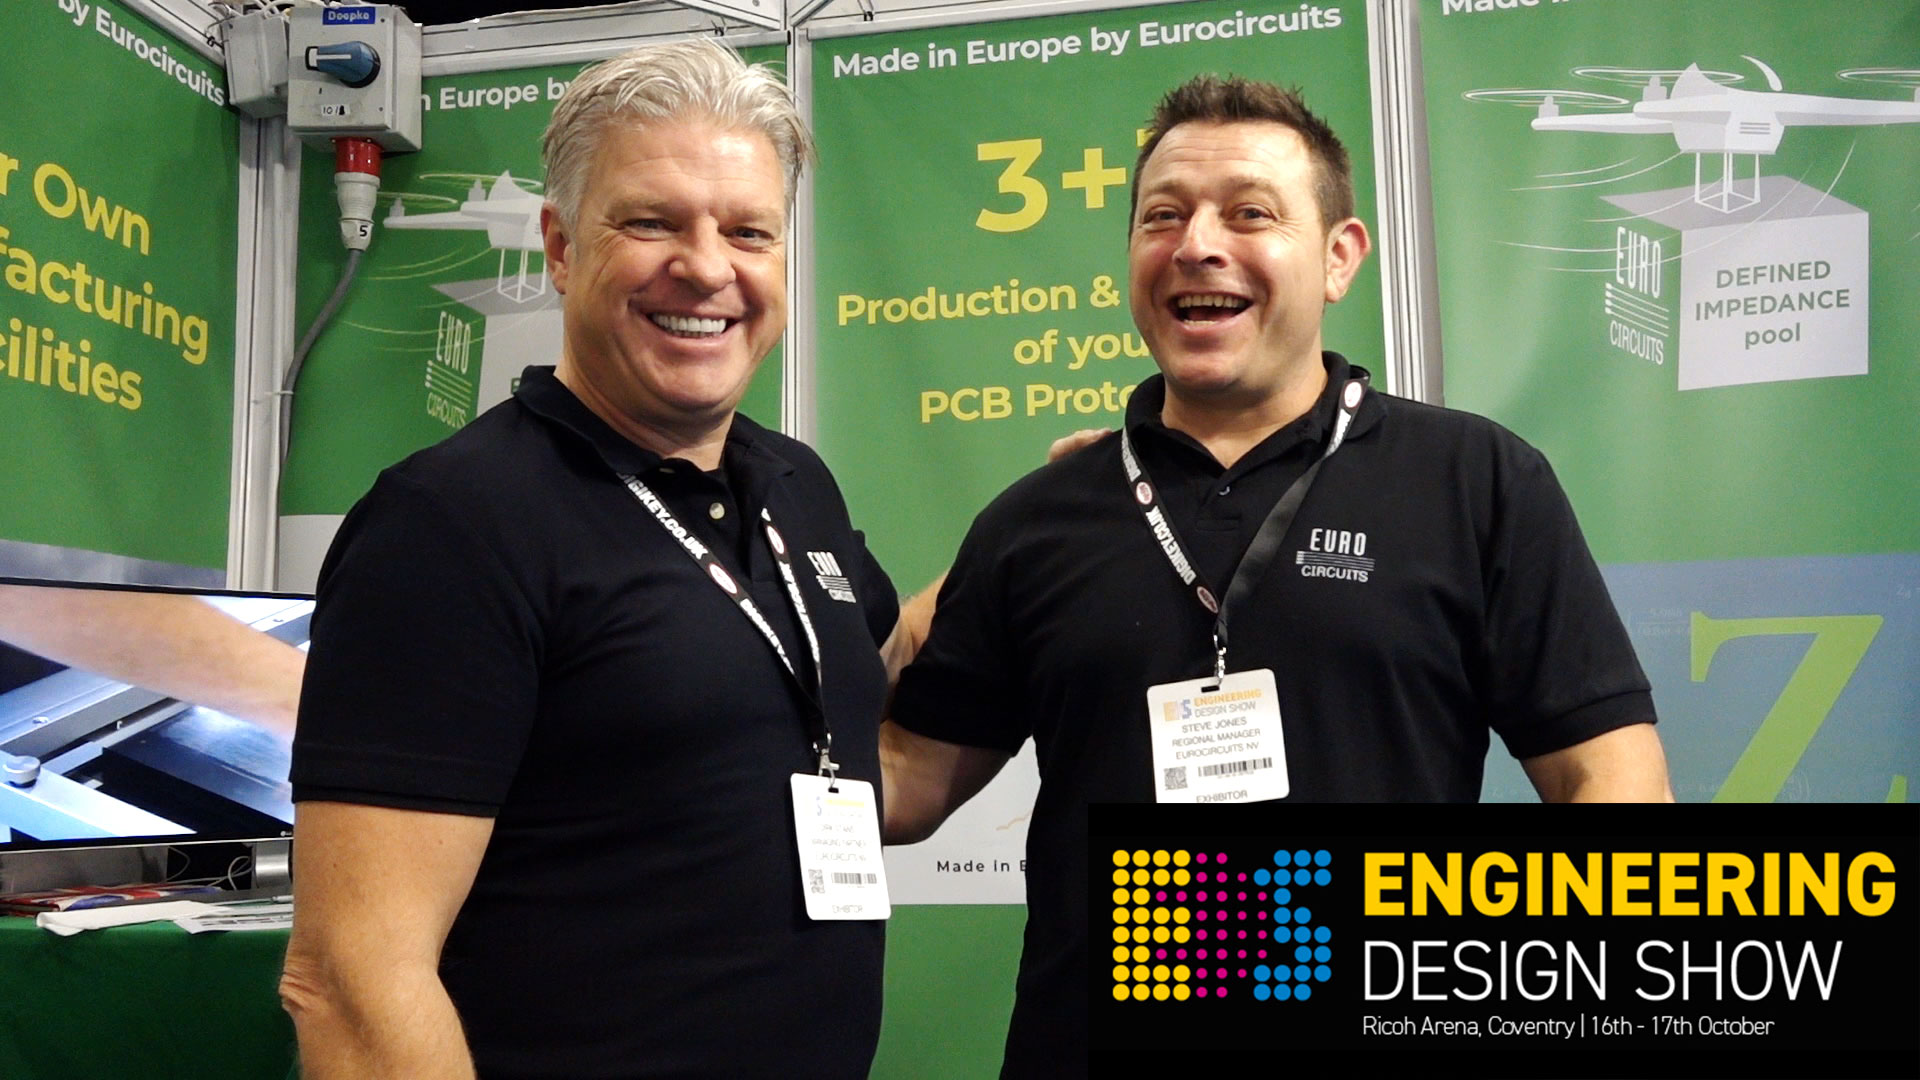 This was the Engineering Design Show 2019 in Coventry UK